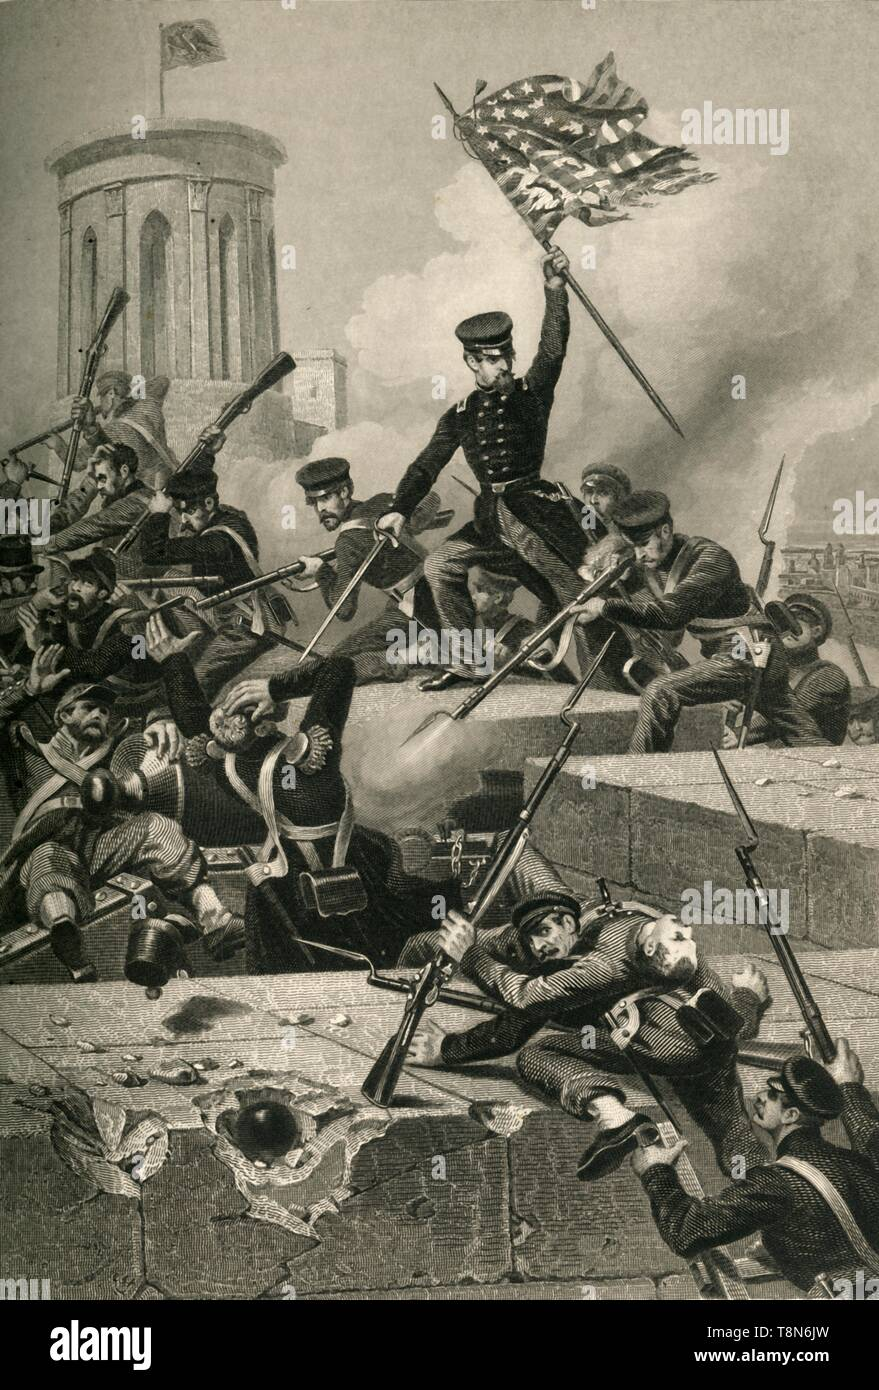 """'Storming of Chapultepec', (1878). The Battle of Chapultepec in September 1847 was fought between the United States Marine Corps and US Army against Mexican forces holding Chapultepec Castle in Mexico City. The Americans took the castle in fierce fighting. From """"Our Country: a Household History for All Readers, from the Discovery of America to the Present Time"""", Volume 3, by Benson J. Lossing. [Johnson & Miles, New York, 1878] - Stock Image"""